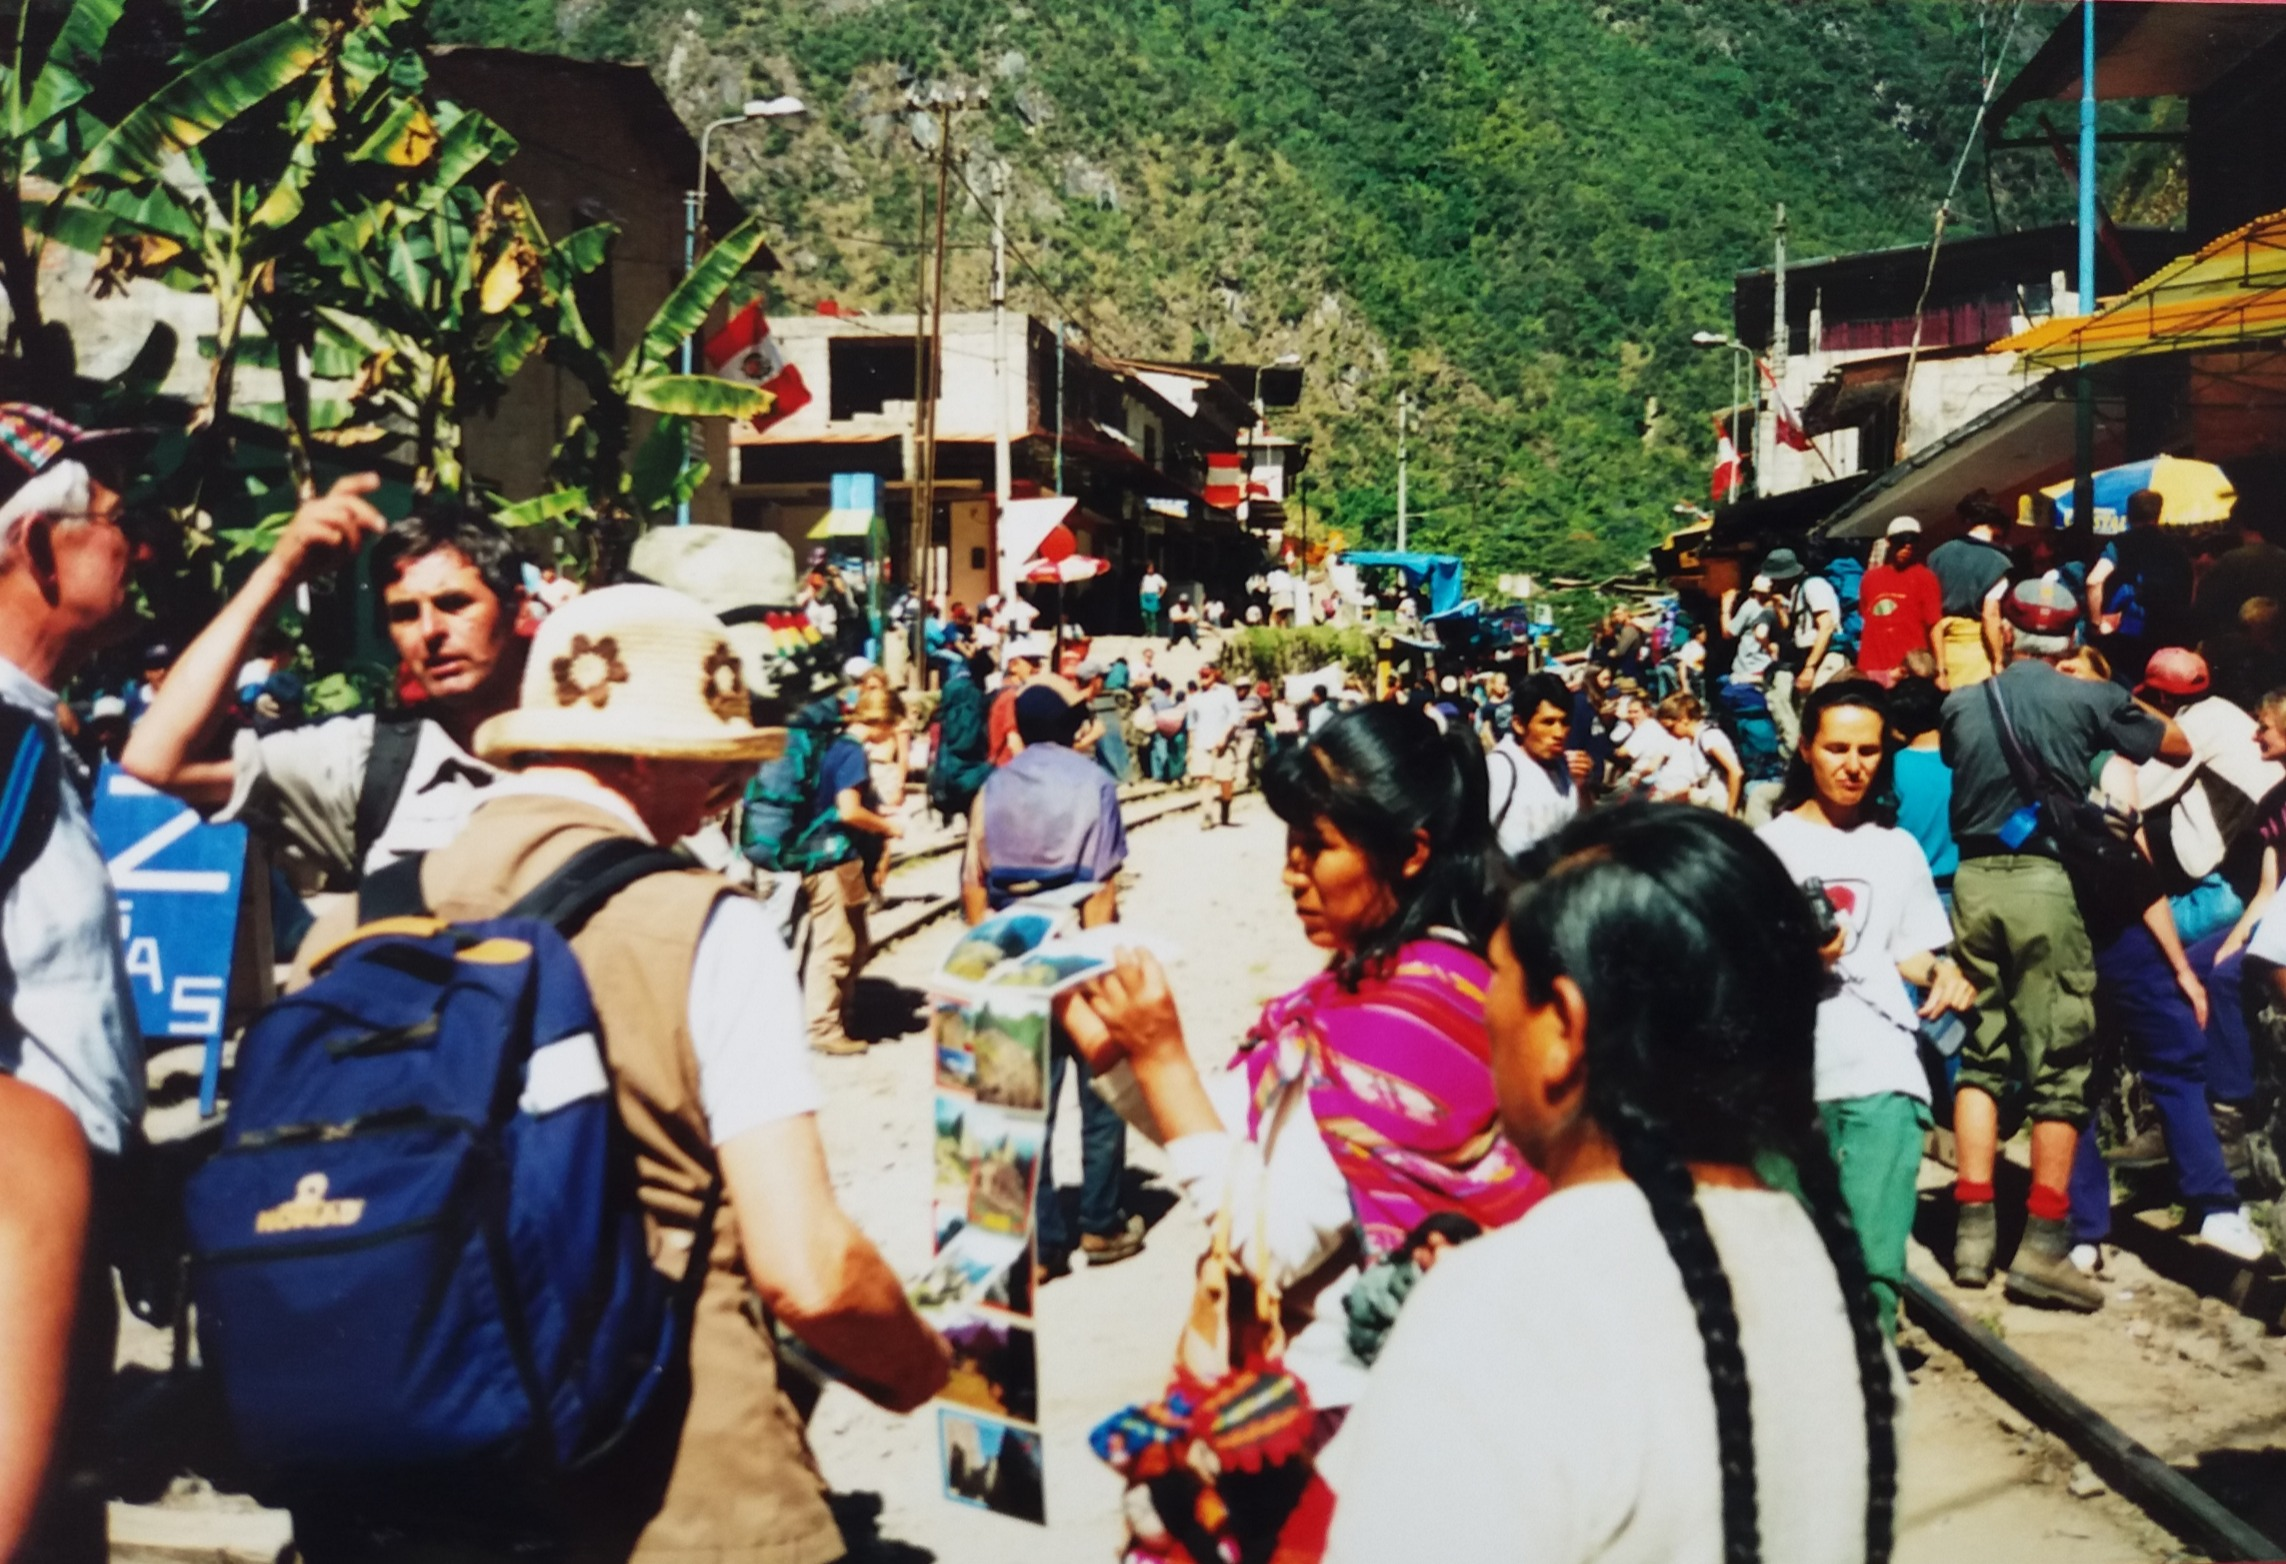 Peru diary - Day 18 - Aguas Calientes